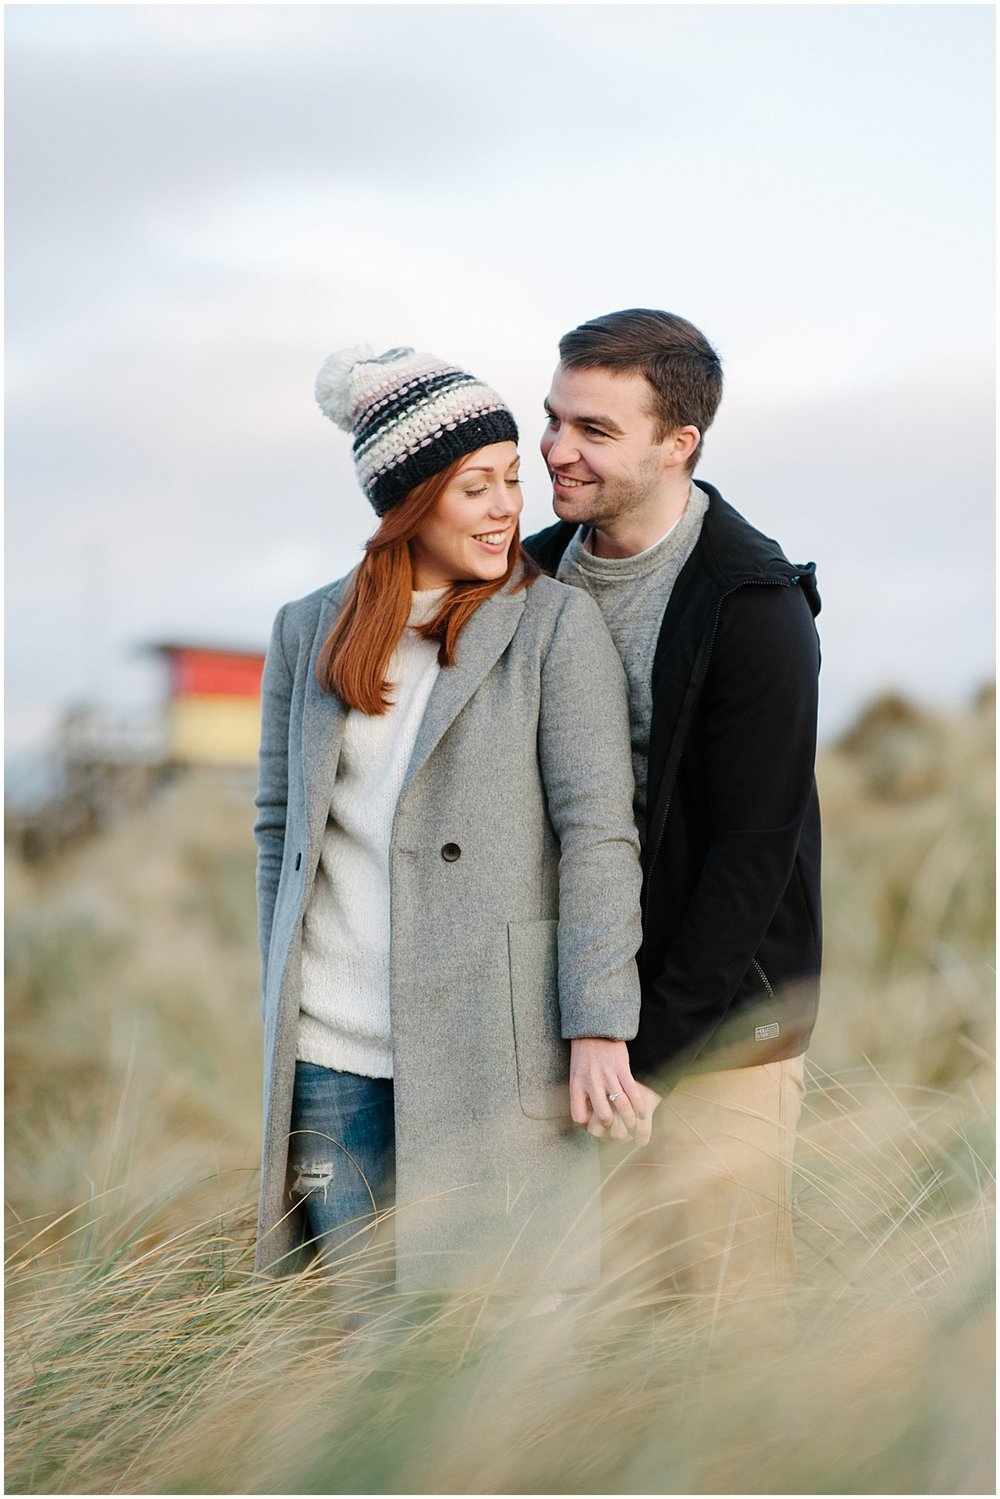 Sinead_Emmet_Rossnowlagh_Beach_pre_wedding_jude_browne_photography_0006.jpg